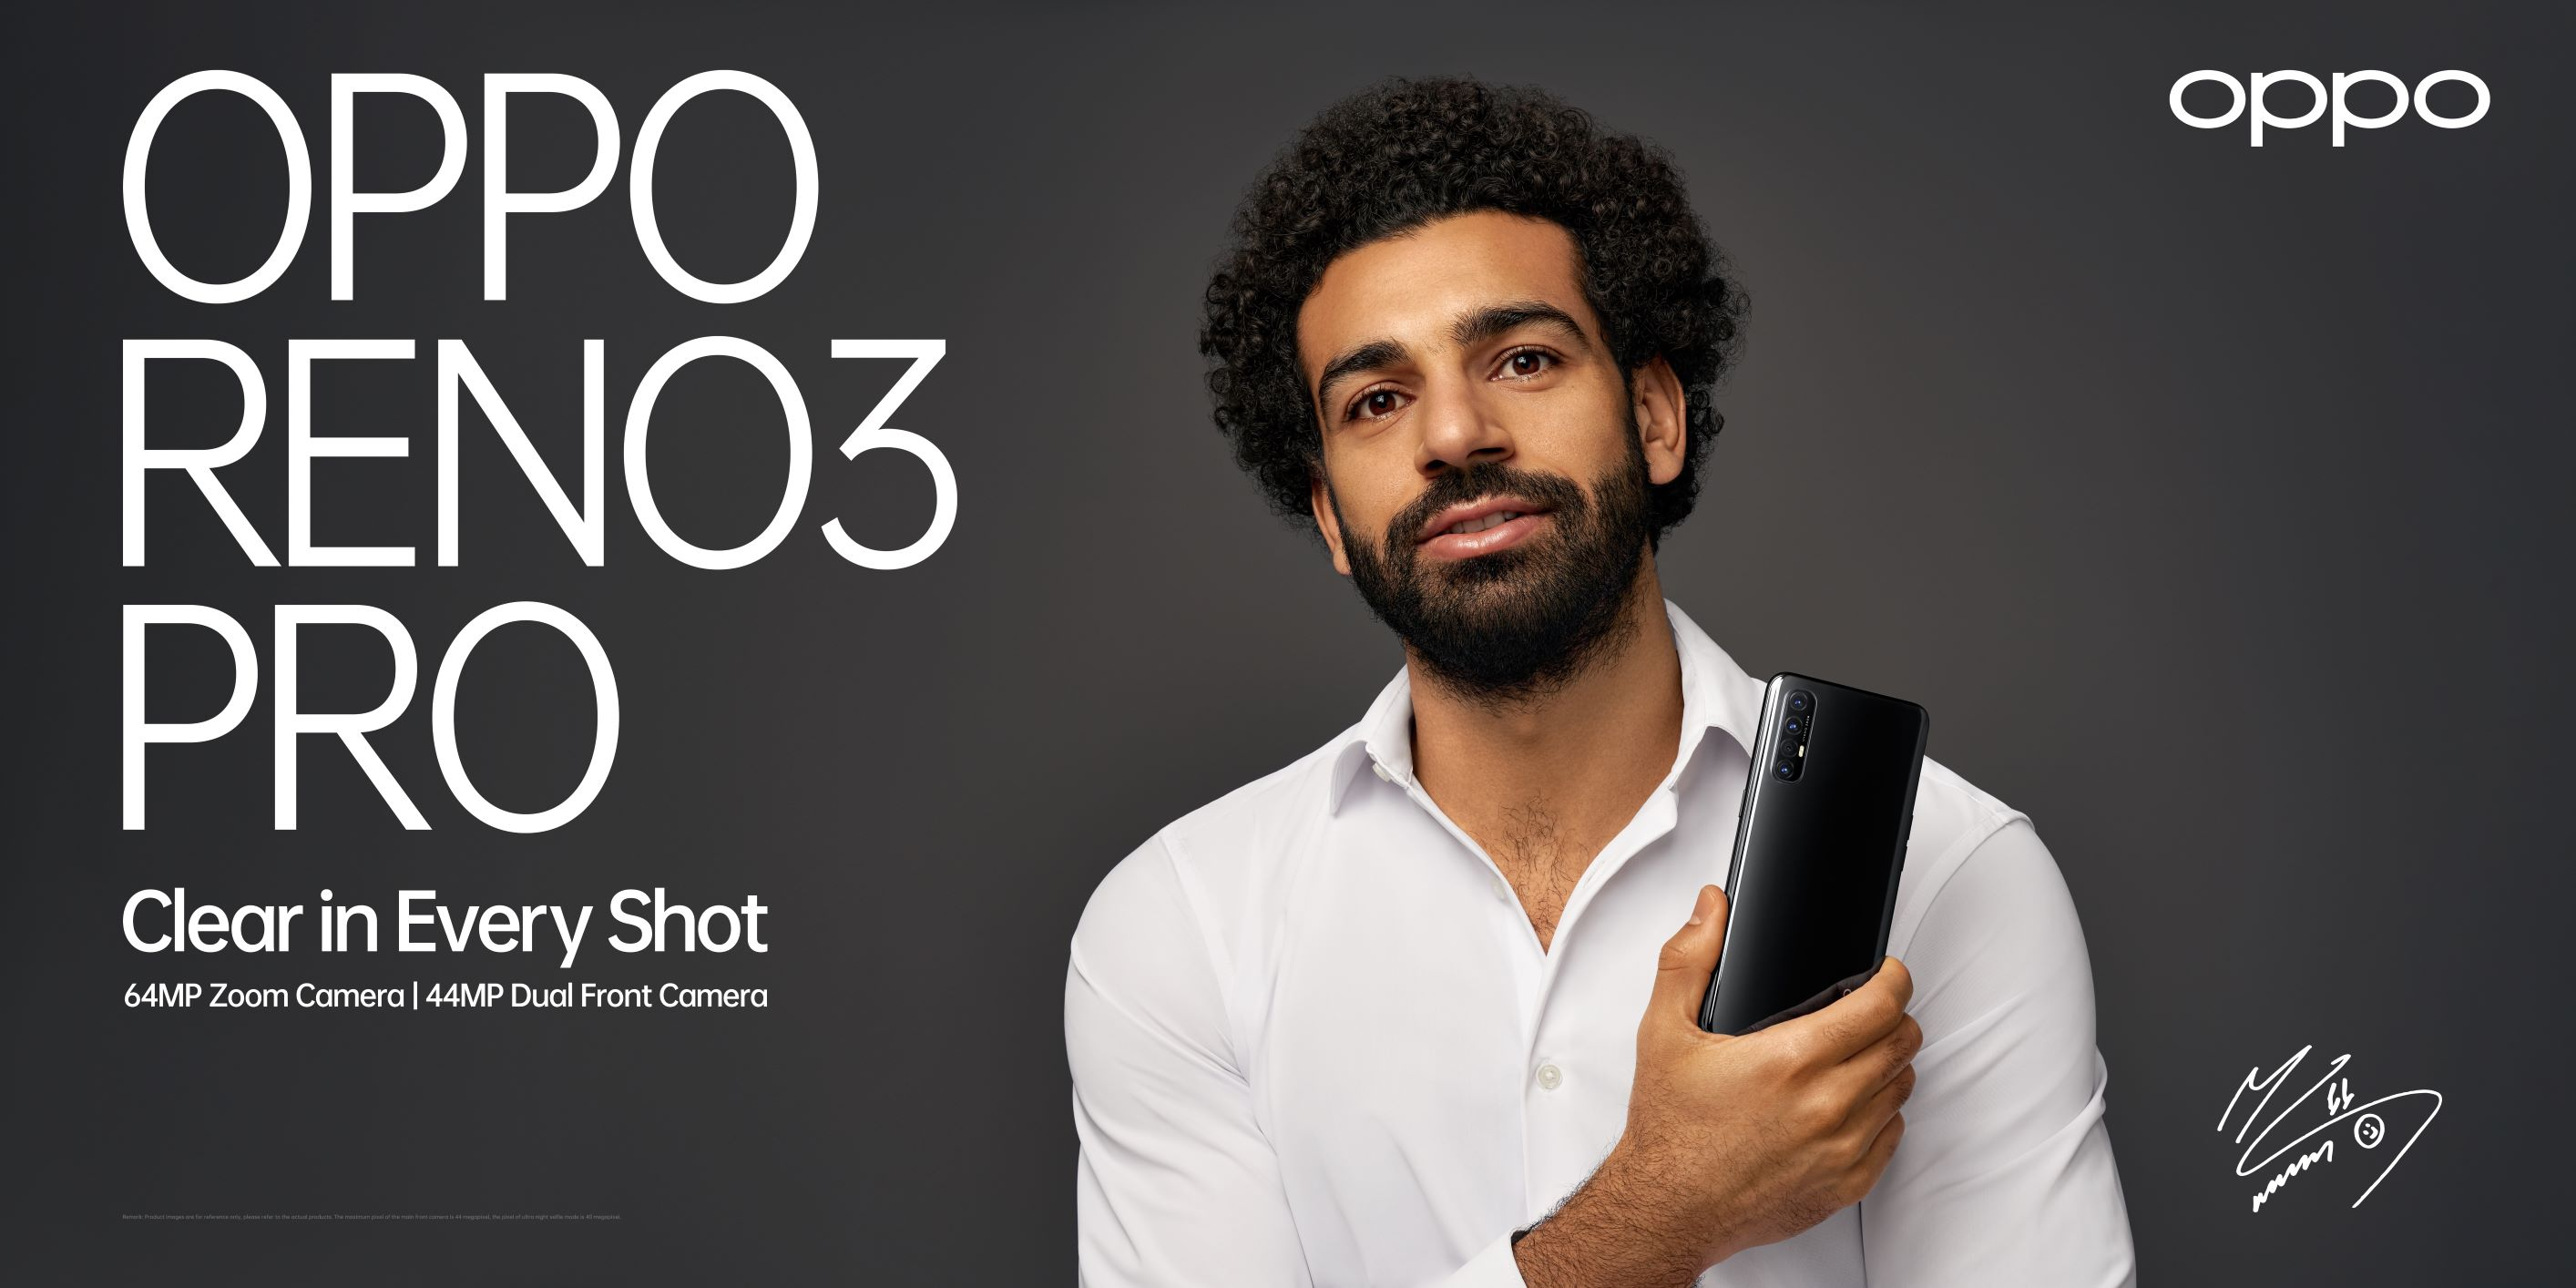 Football Legend Mohamed Salah signs up as OPPO's Brand Ambassador in the Middle East and Africa